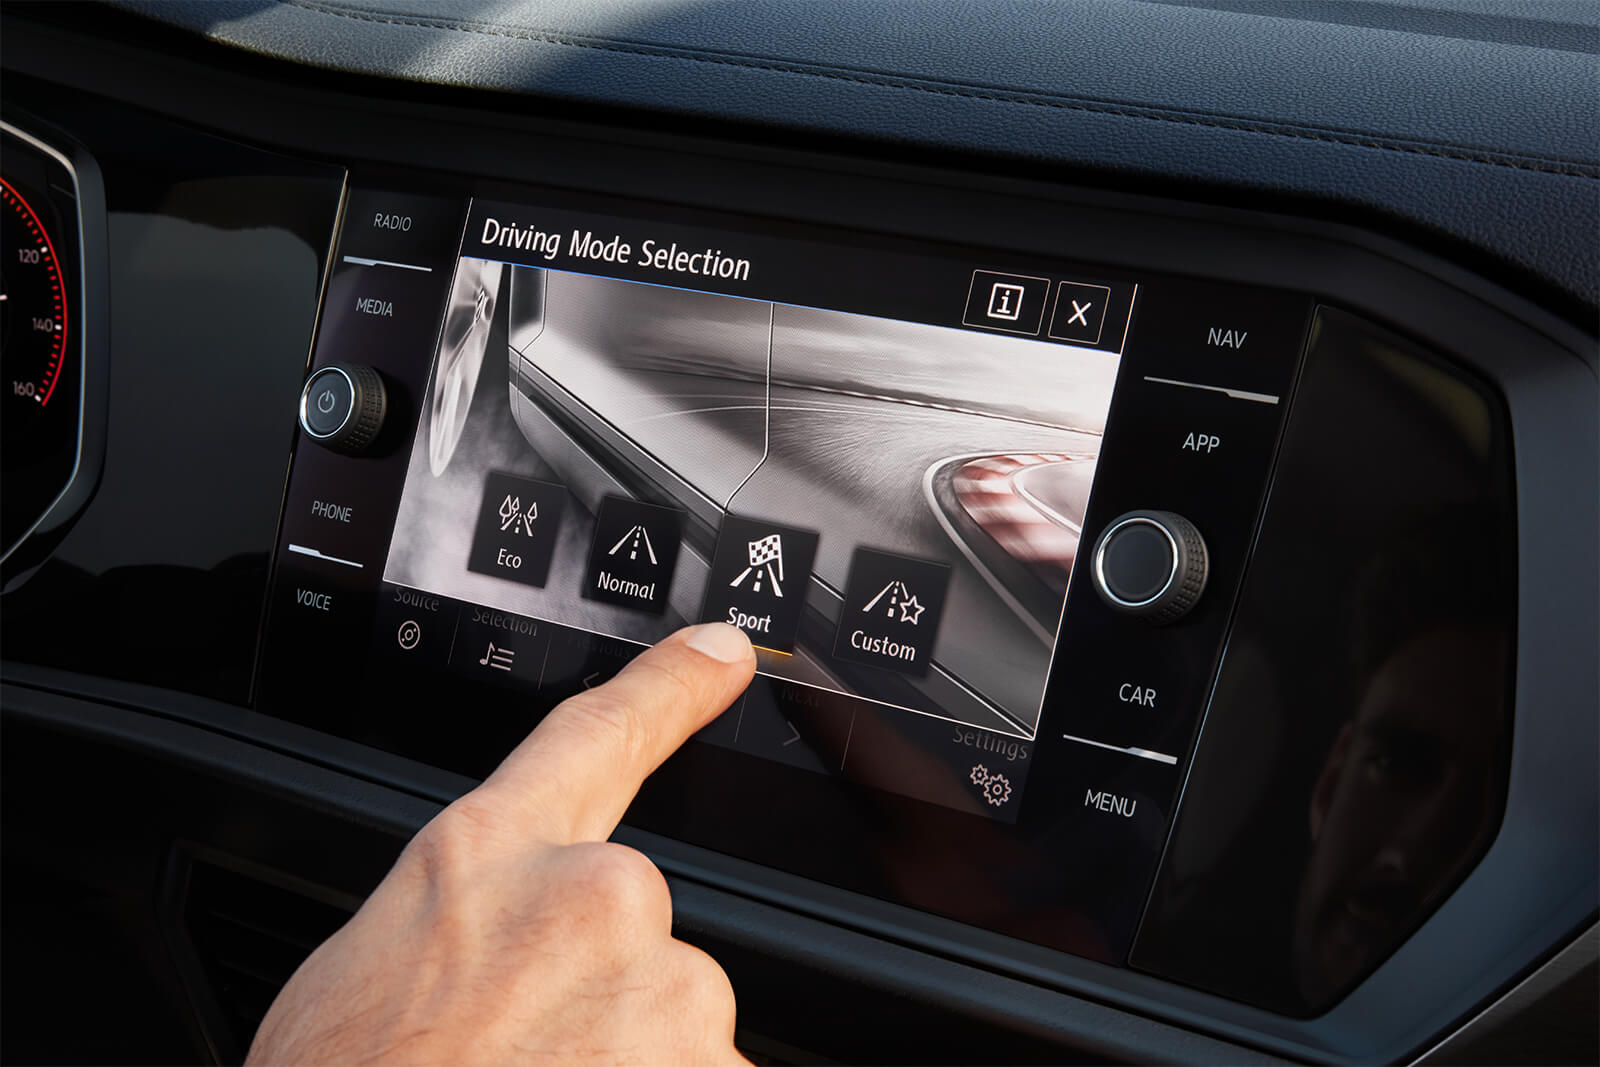 2019 Jetta Infotainment Center